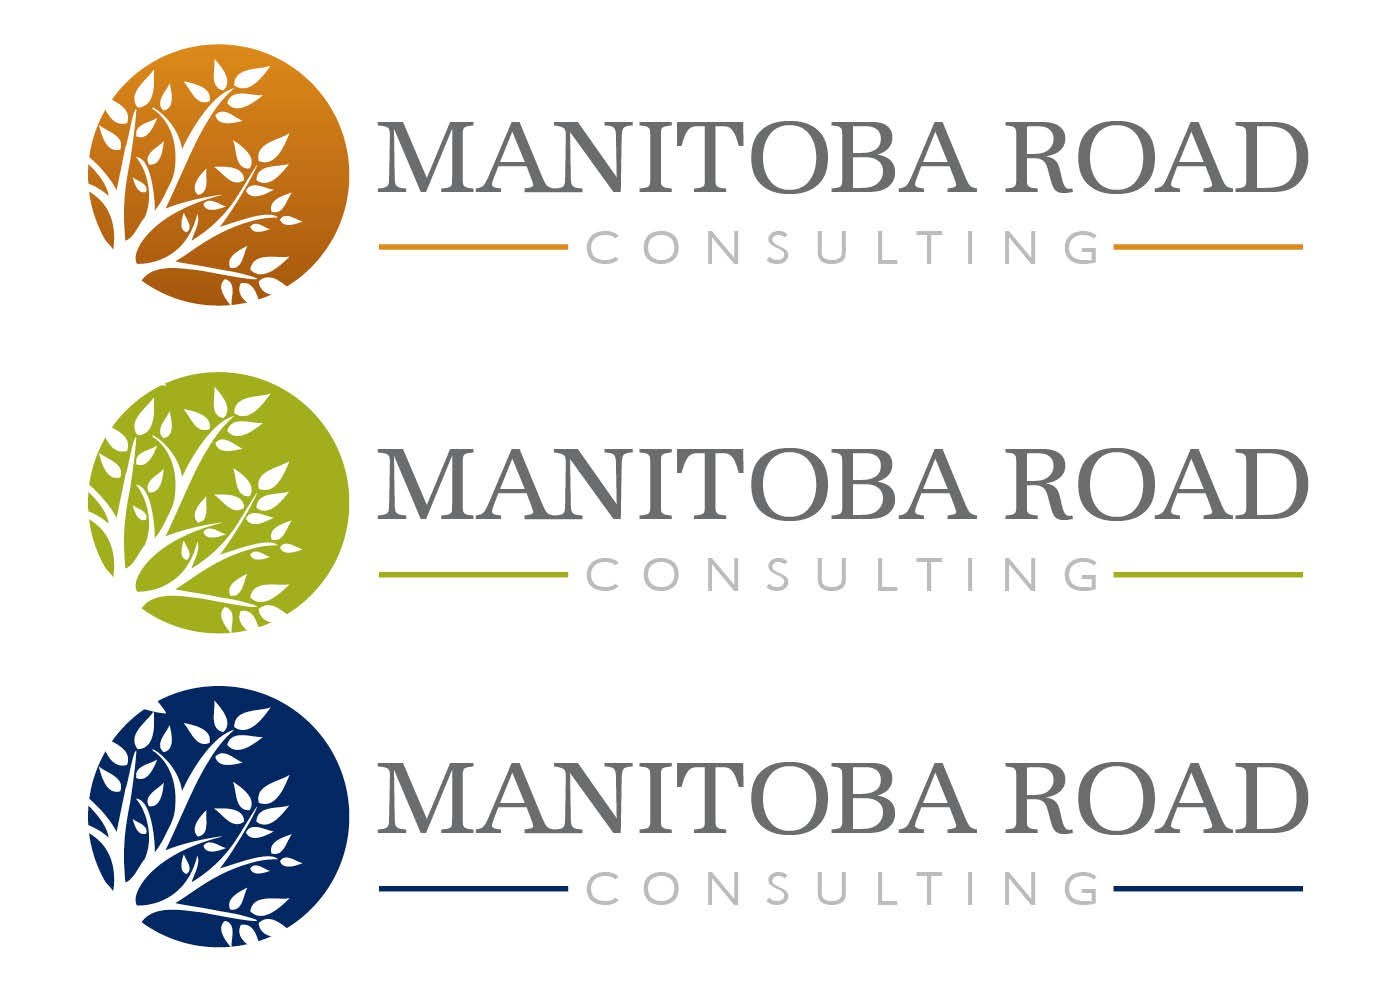 Help Manitoba Road with a new logo